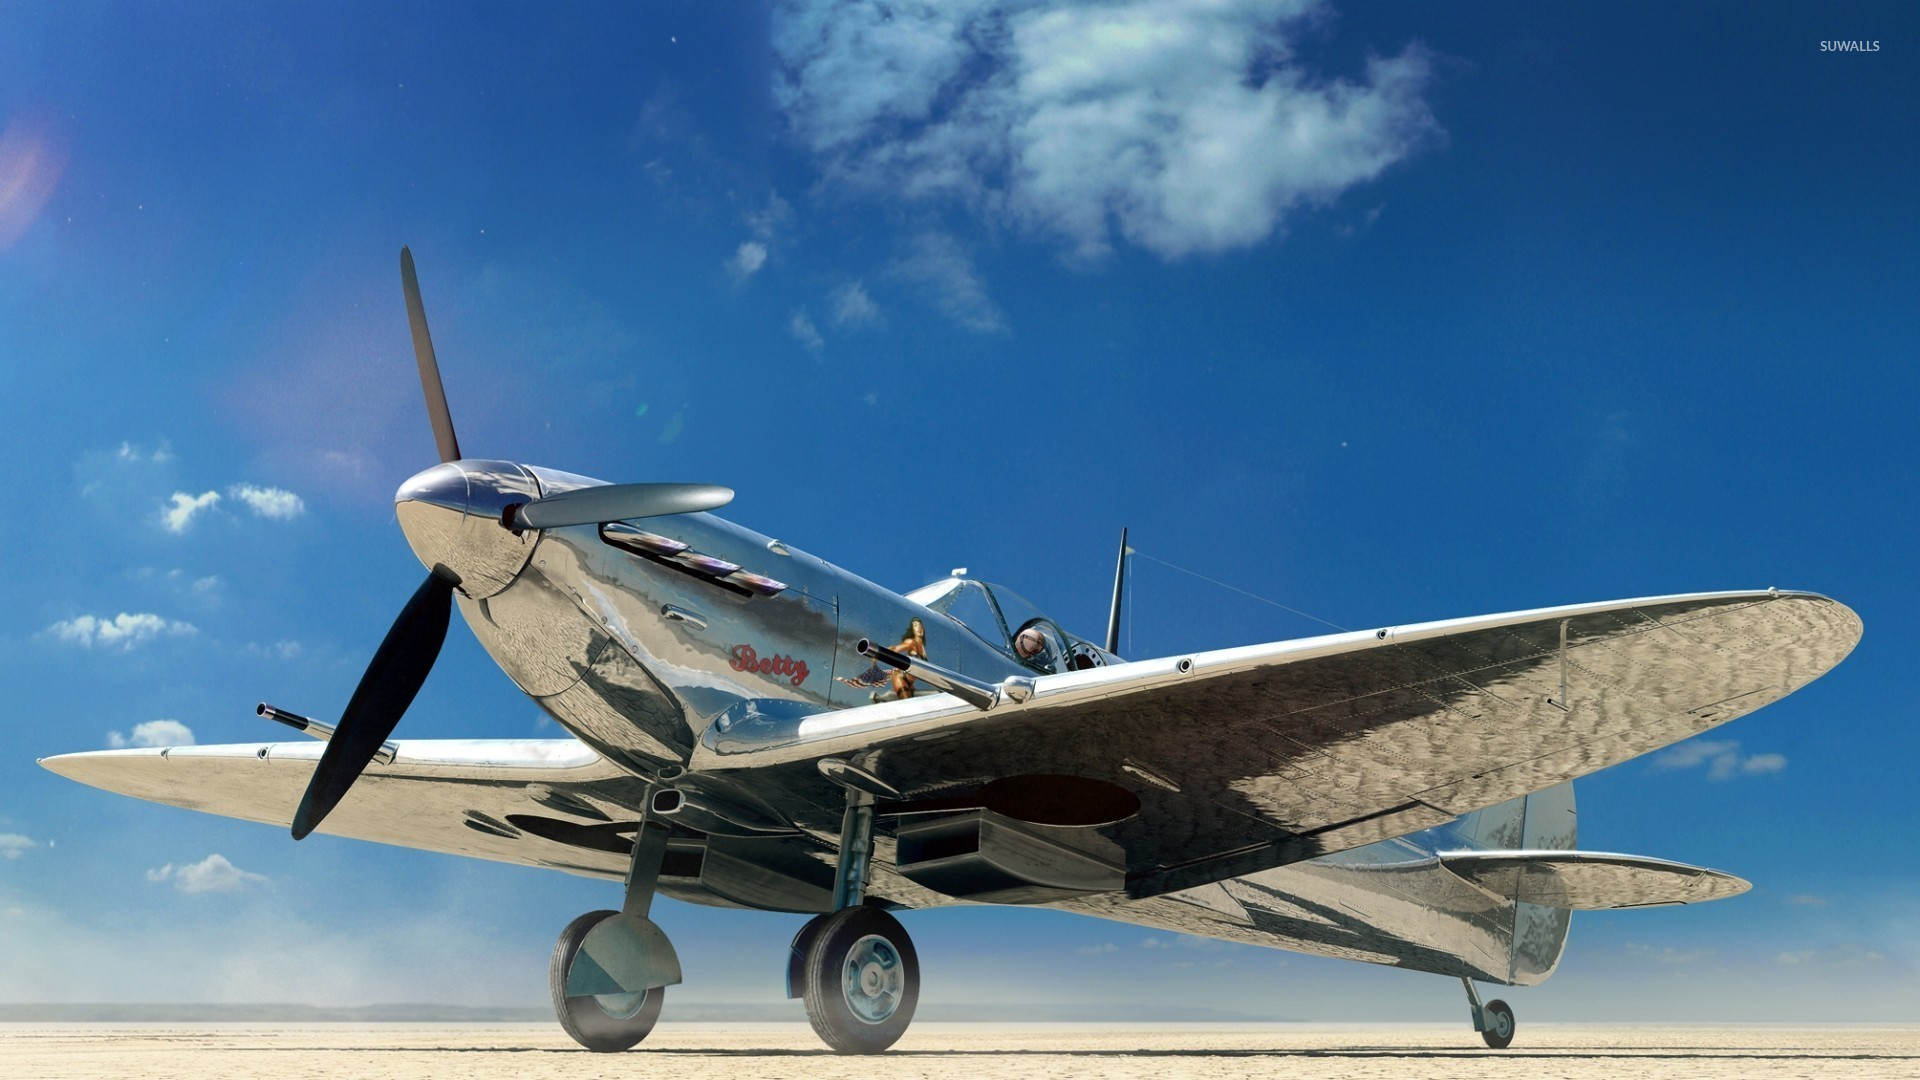 1920x1080 ... Supermarine Spitfire Full HD Wallpaper and Background |  .